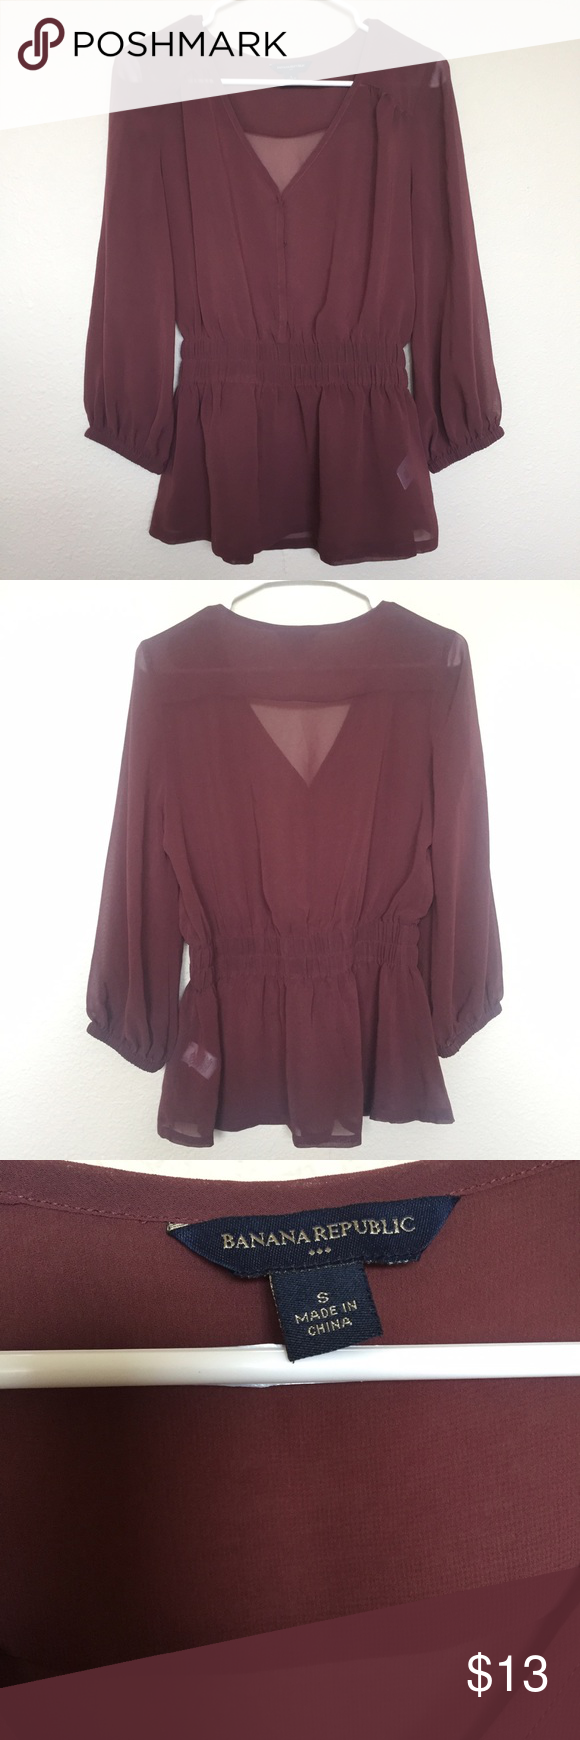 Banana Republic Sheer Blouse This is a dusty burgundy shirt with a 3/4 sleeve, has elastic at the end of the sleeves. Elastic waist, worn a couple of times but still in mint condition. Perfect for work or the day to day life. Free gifts with any purchase from my closet. Banana Republic Tops Blouses